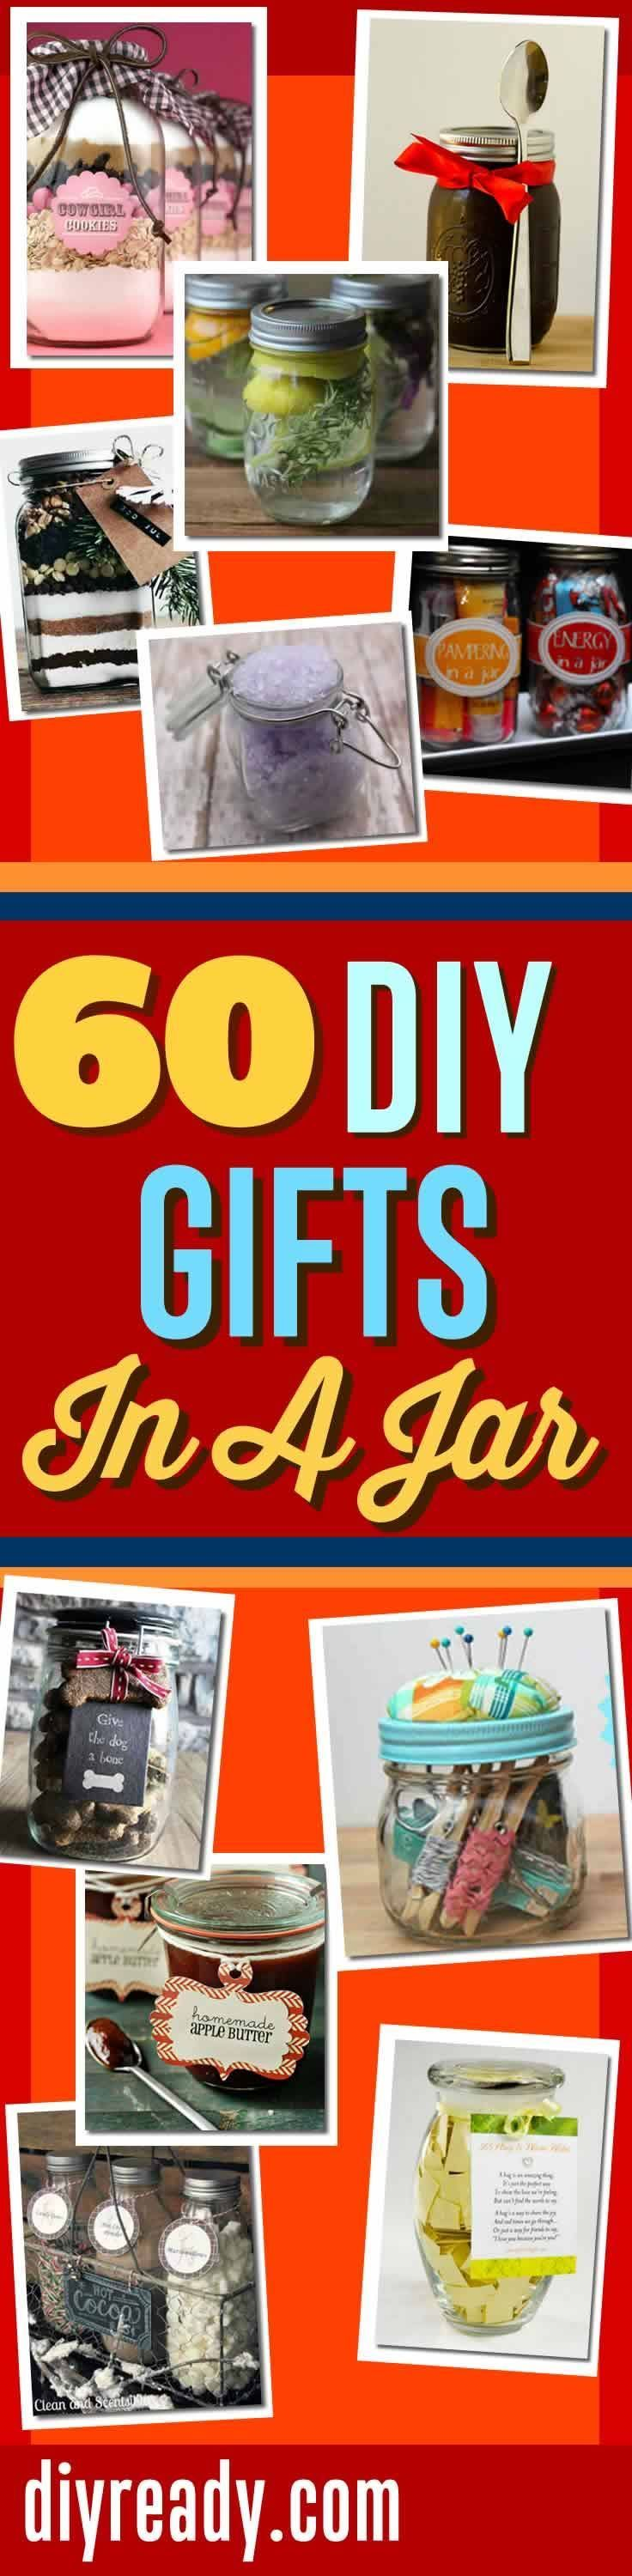 DIY Gifts In A Jar | Mason Jar Gift Ideas, DIY Projects and Homemade Gifts http://diyready.com/60-cute-and-easy-diy-gifts-in-a-jar-christmas-gift-ideas/